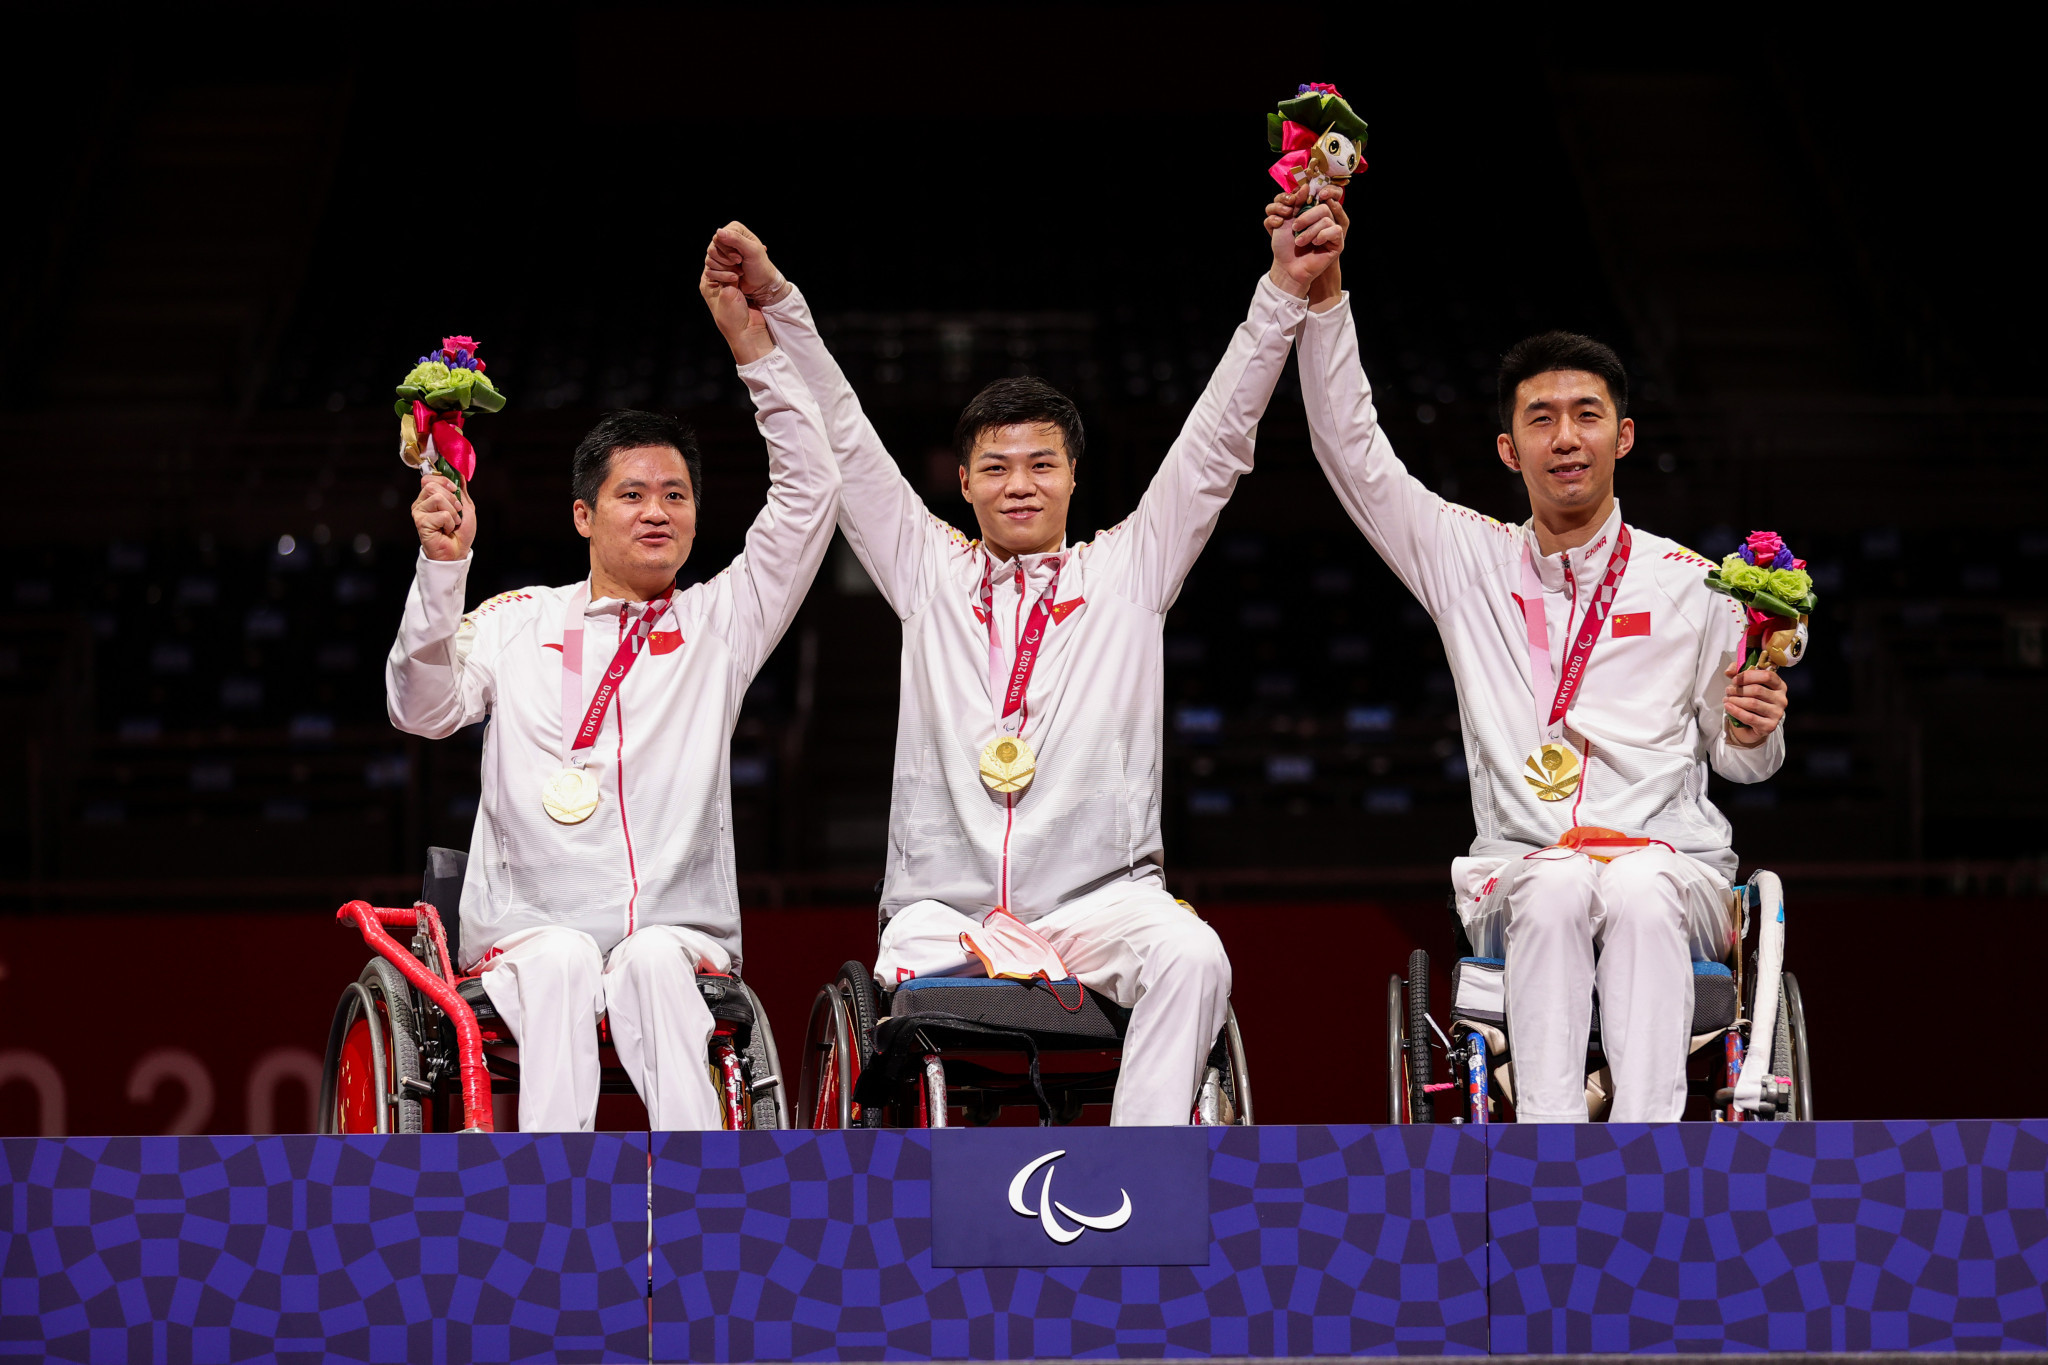 China end wheelchair fencing on a high after team foil golds at Tokyo 2020